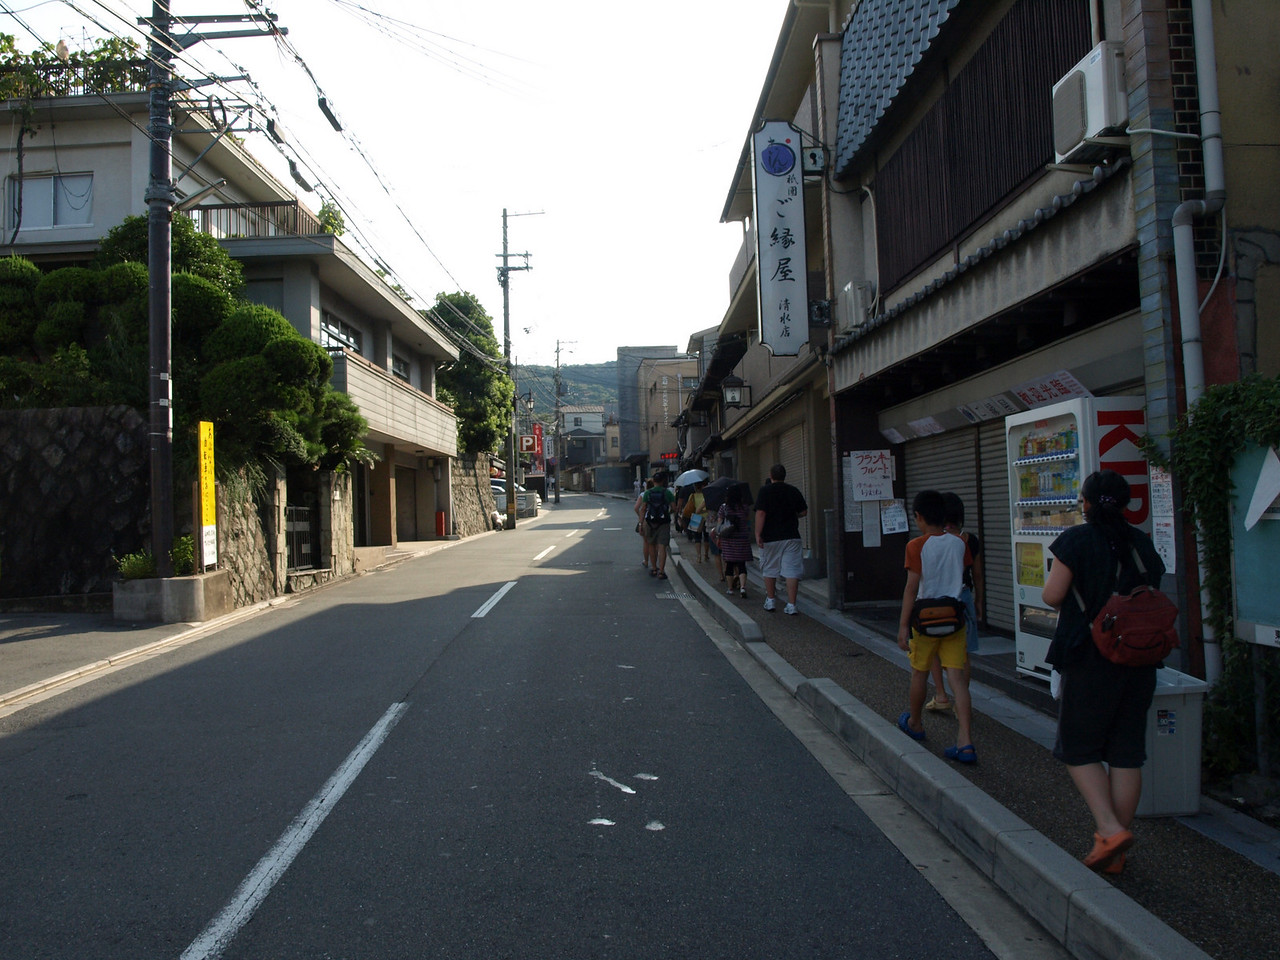 With our spiritual journey in mind, the bus dropped us off at the Gojizaka stop at 8 in the morning and we started on our way. Because we were still waking up extremely early due to the time change, we were wide awake and eager to see what Kyoto had in store for us.